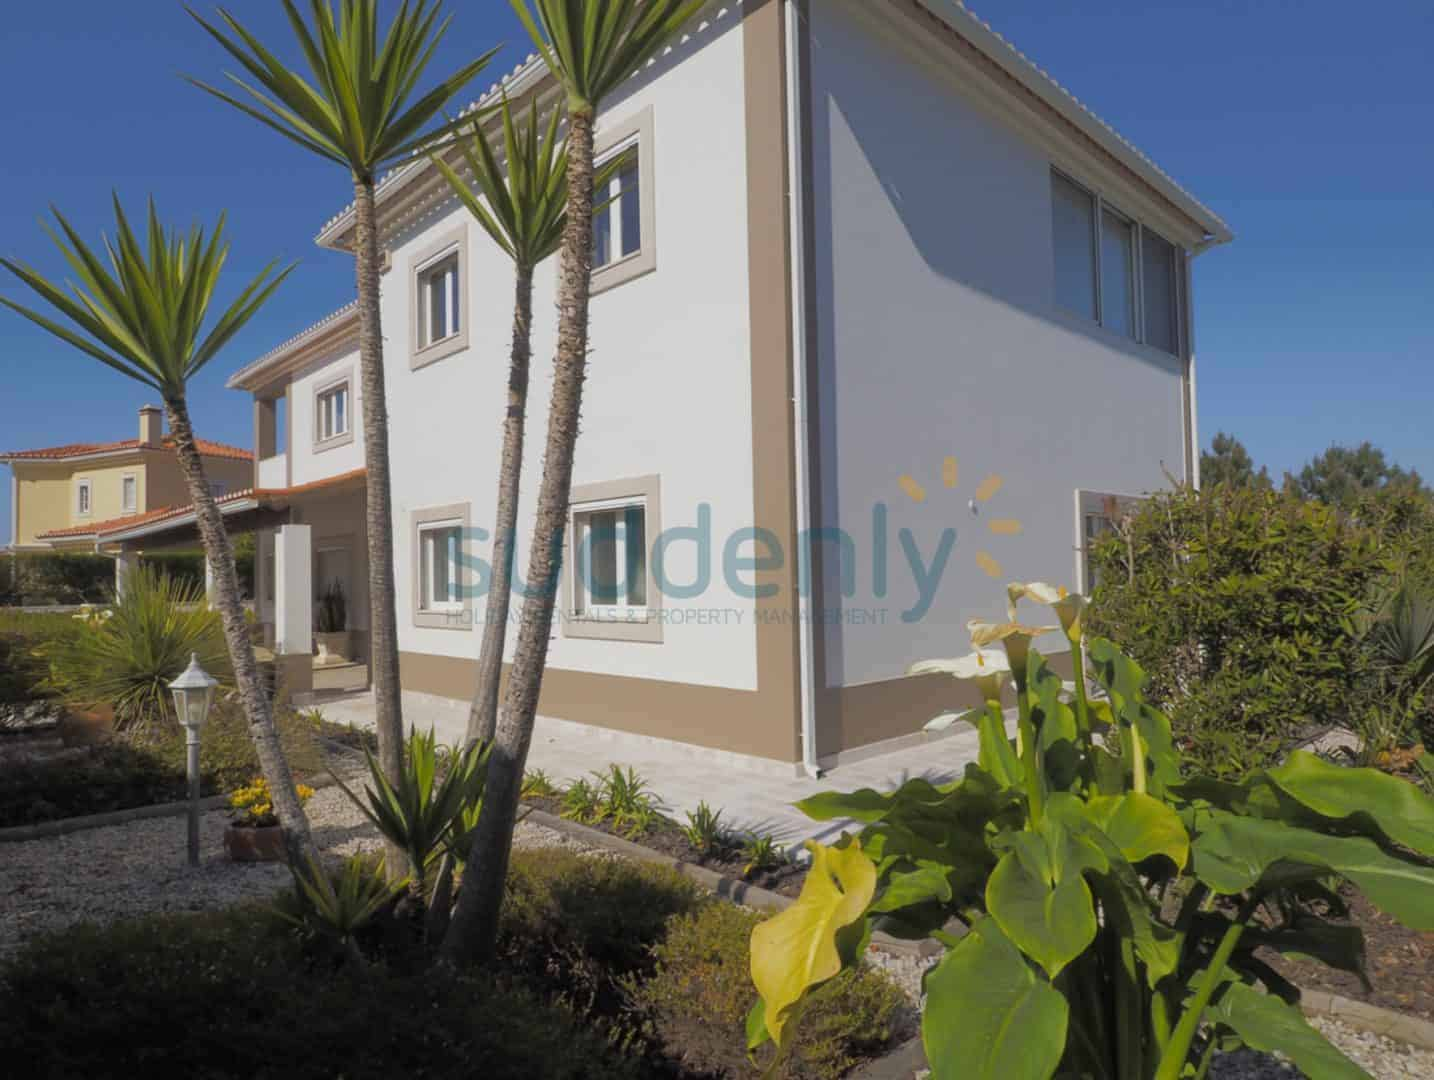 Holiday Rentals in Praia D'El Rey 369